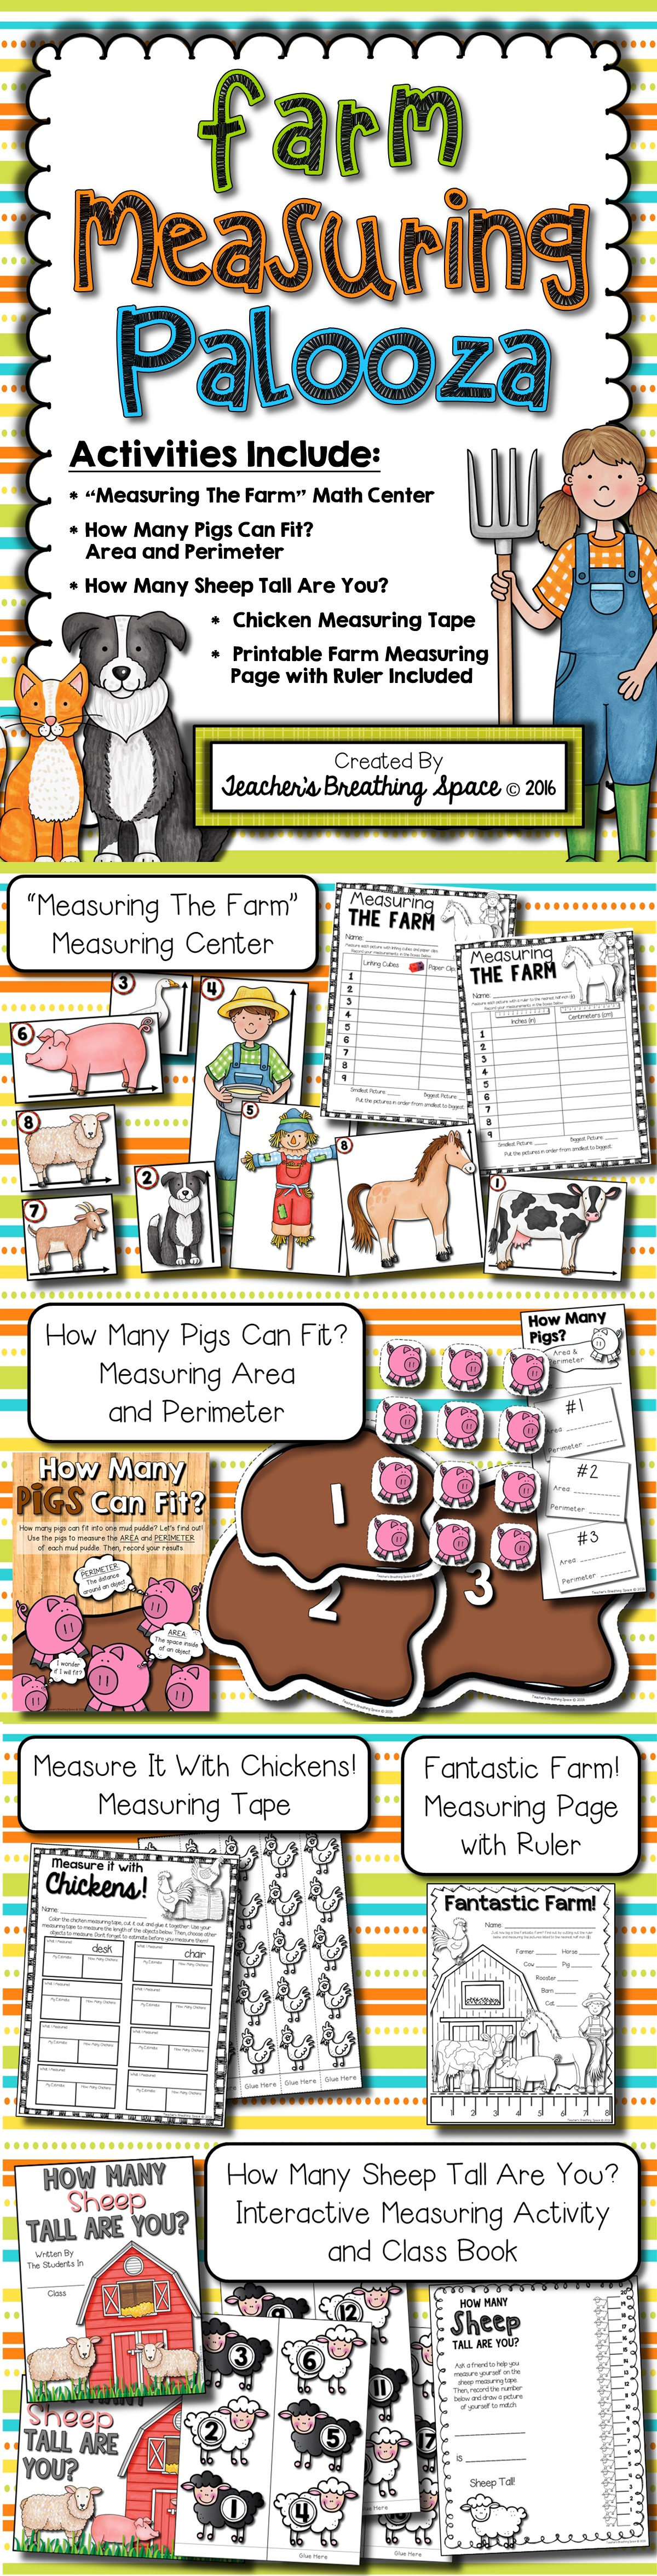 Farm Measuring Palooza Farm Animal Measurement Math